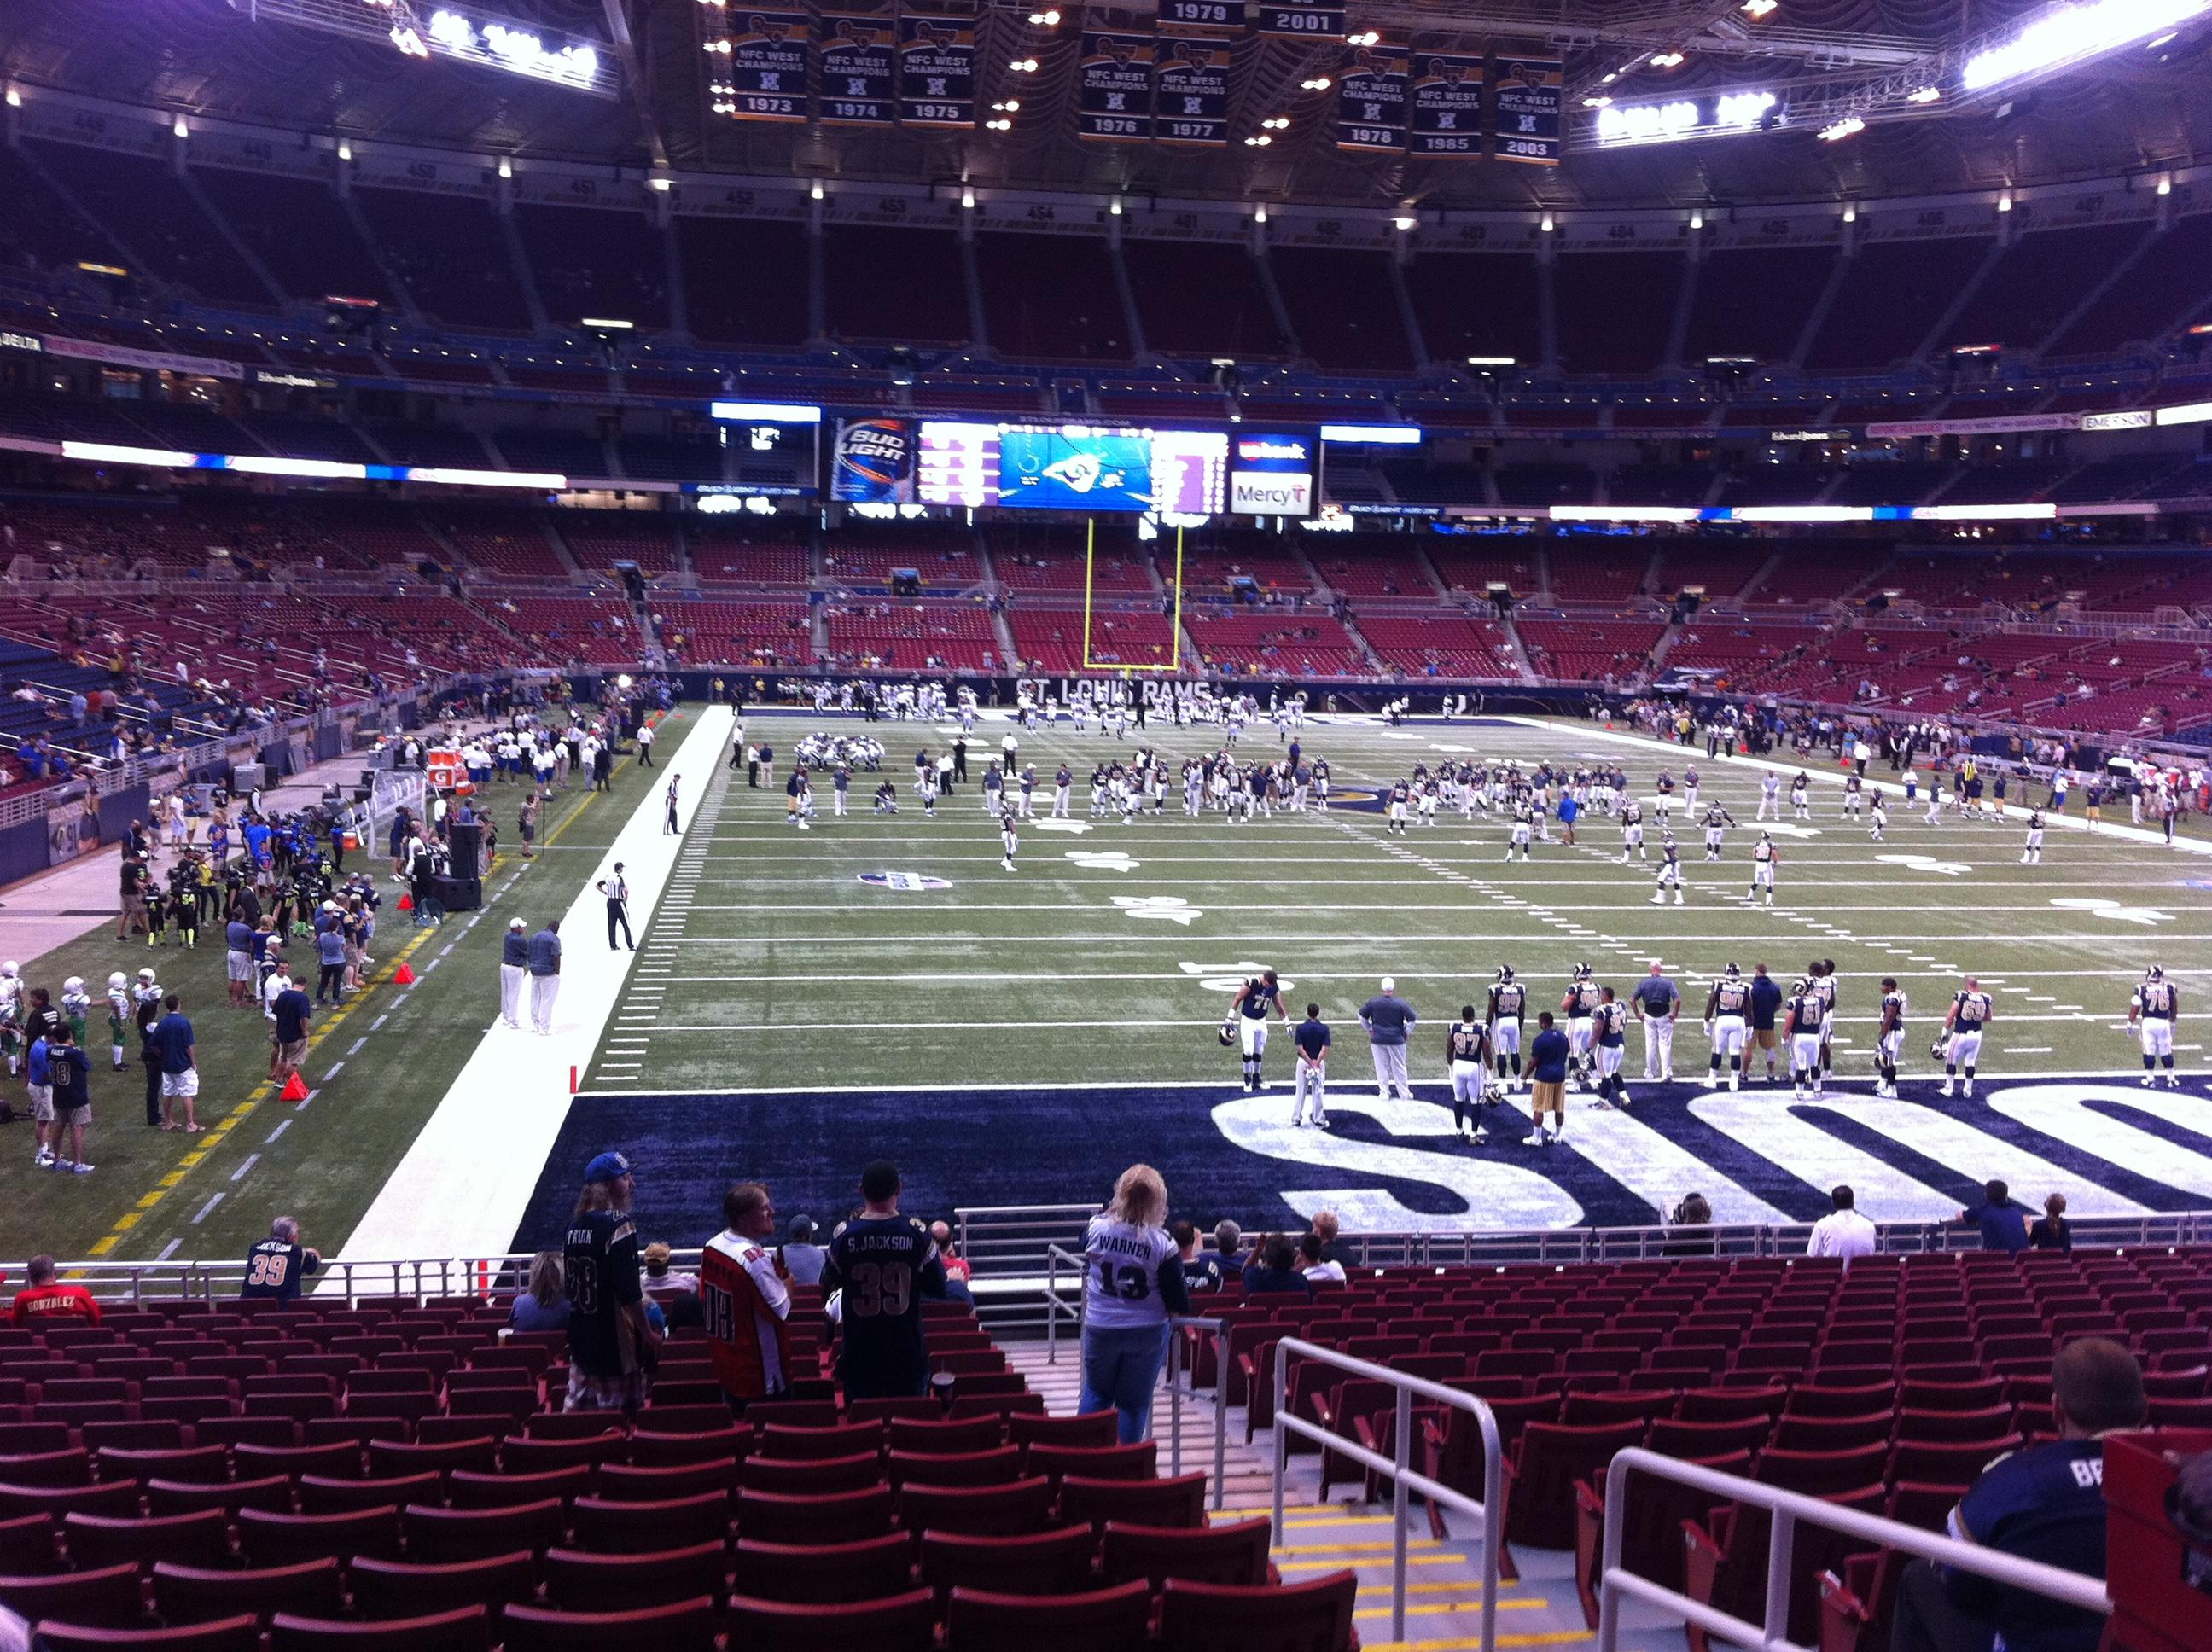 The Dome at America's Center Section 130 Row U Seat 2